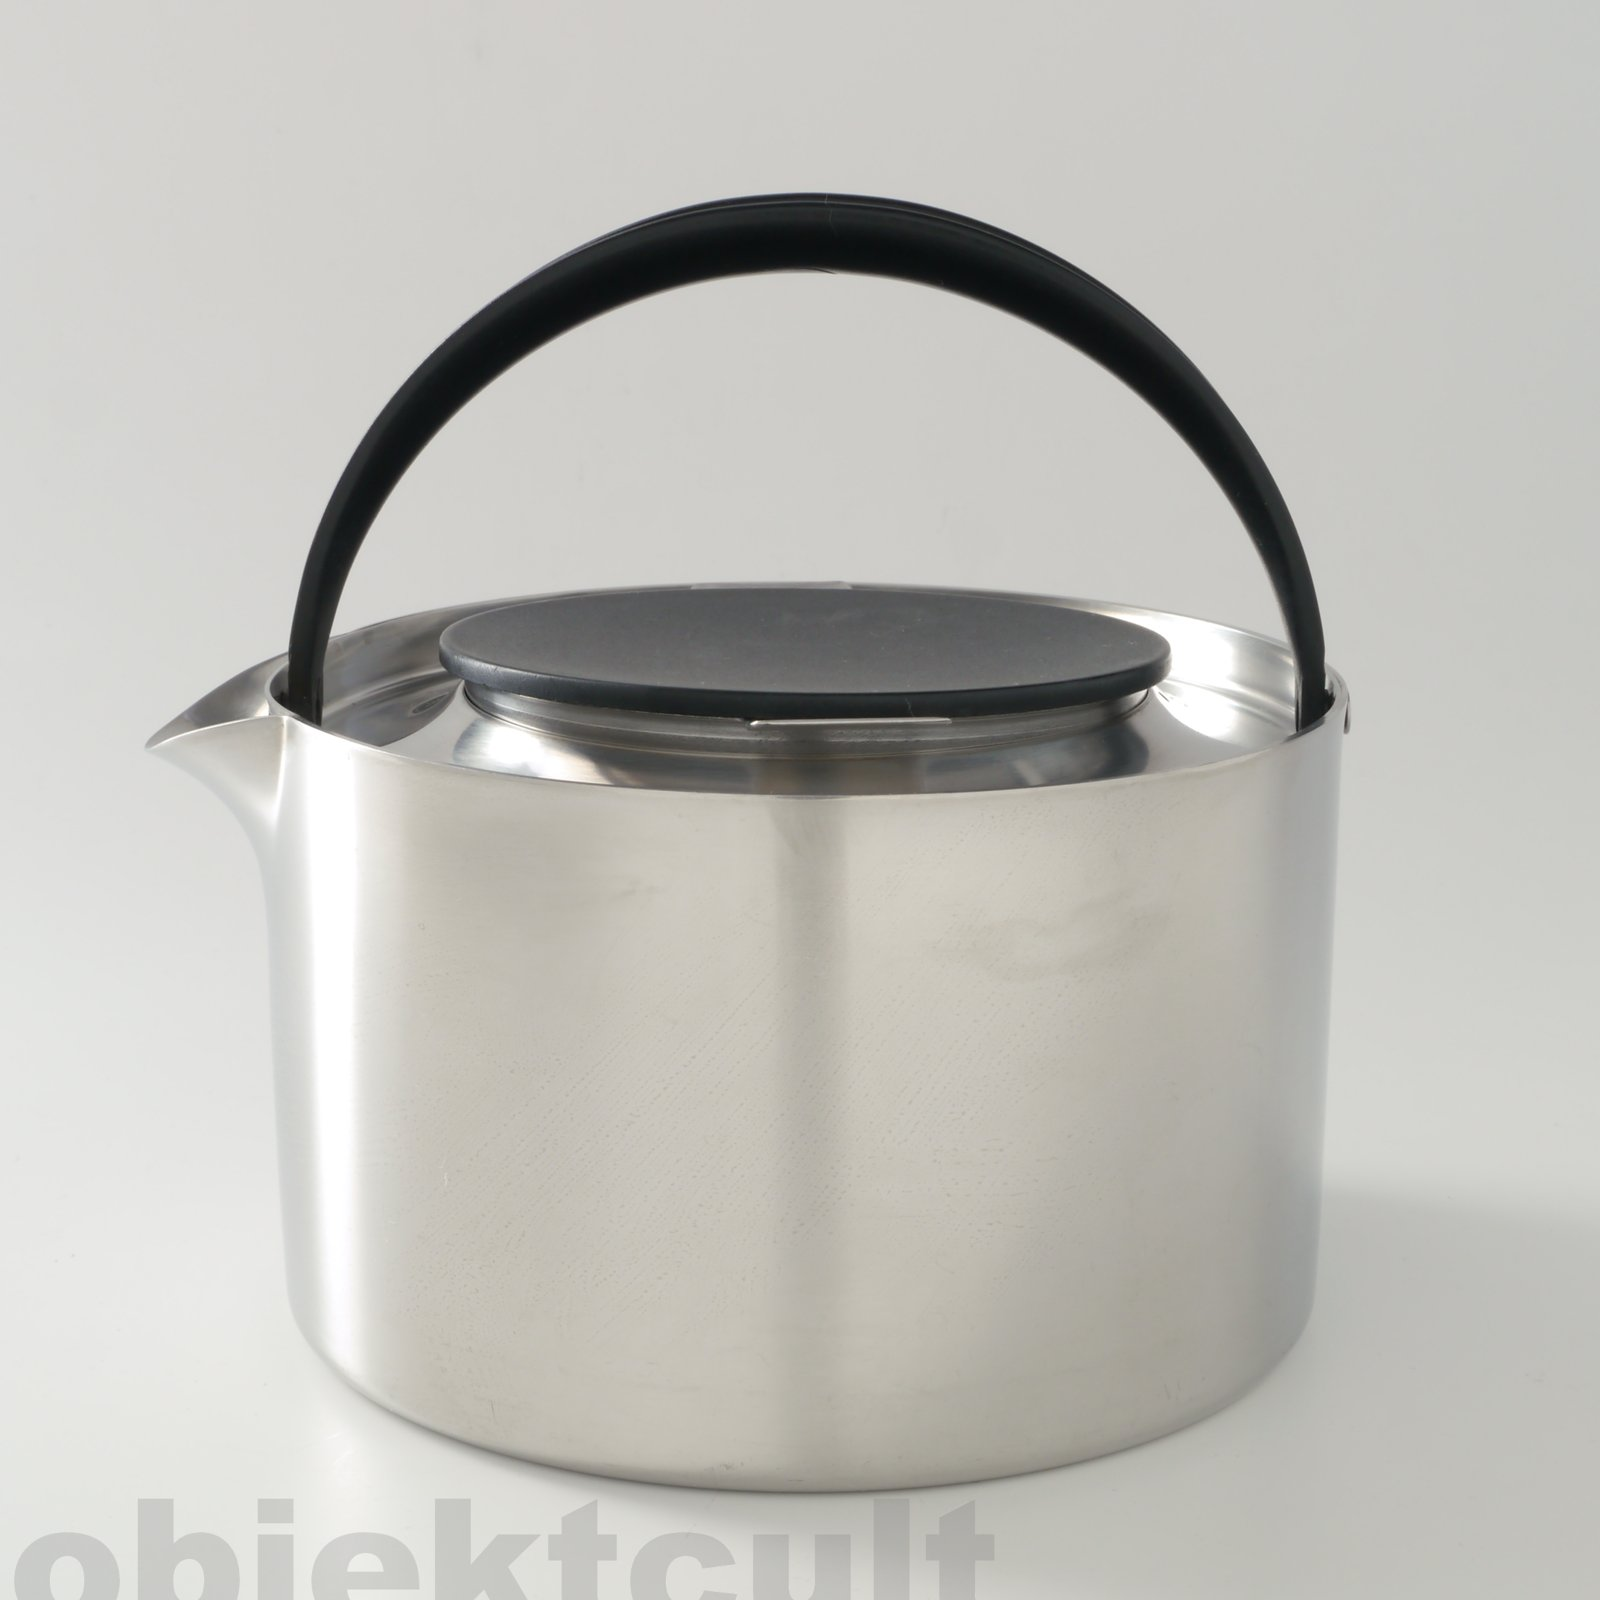 stelton erik magnussen teapot kettle inox 1 6l teekanne. Black Bedroom Furniture Sets. Home Design Ideas